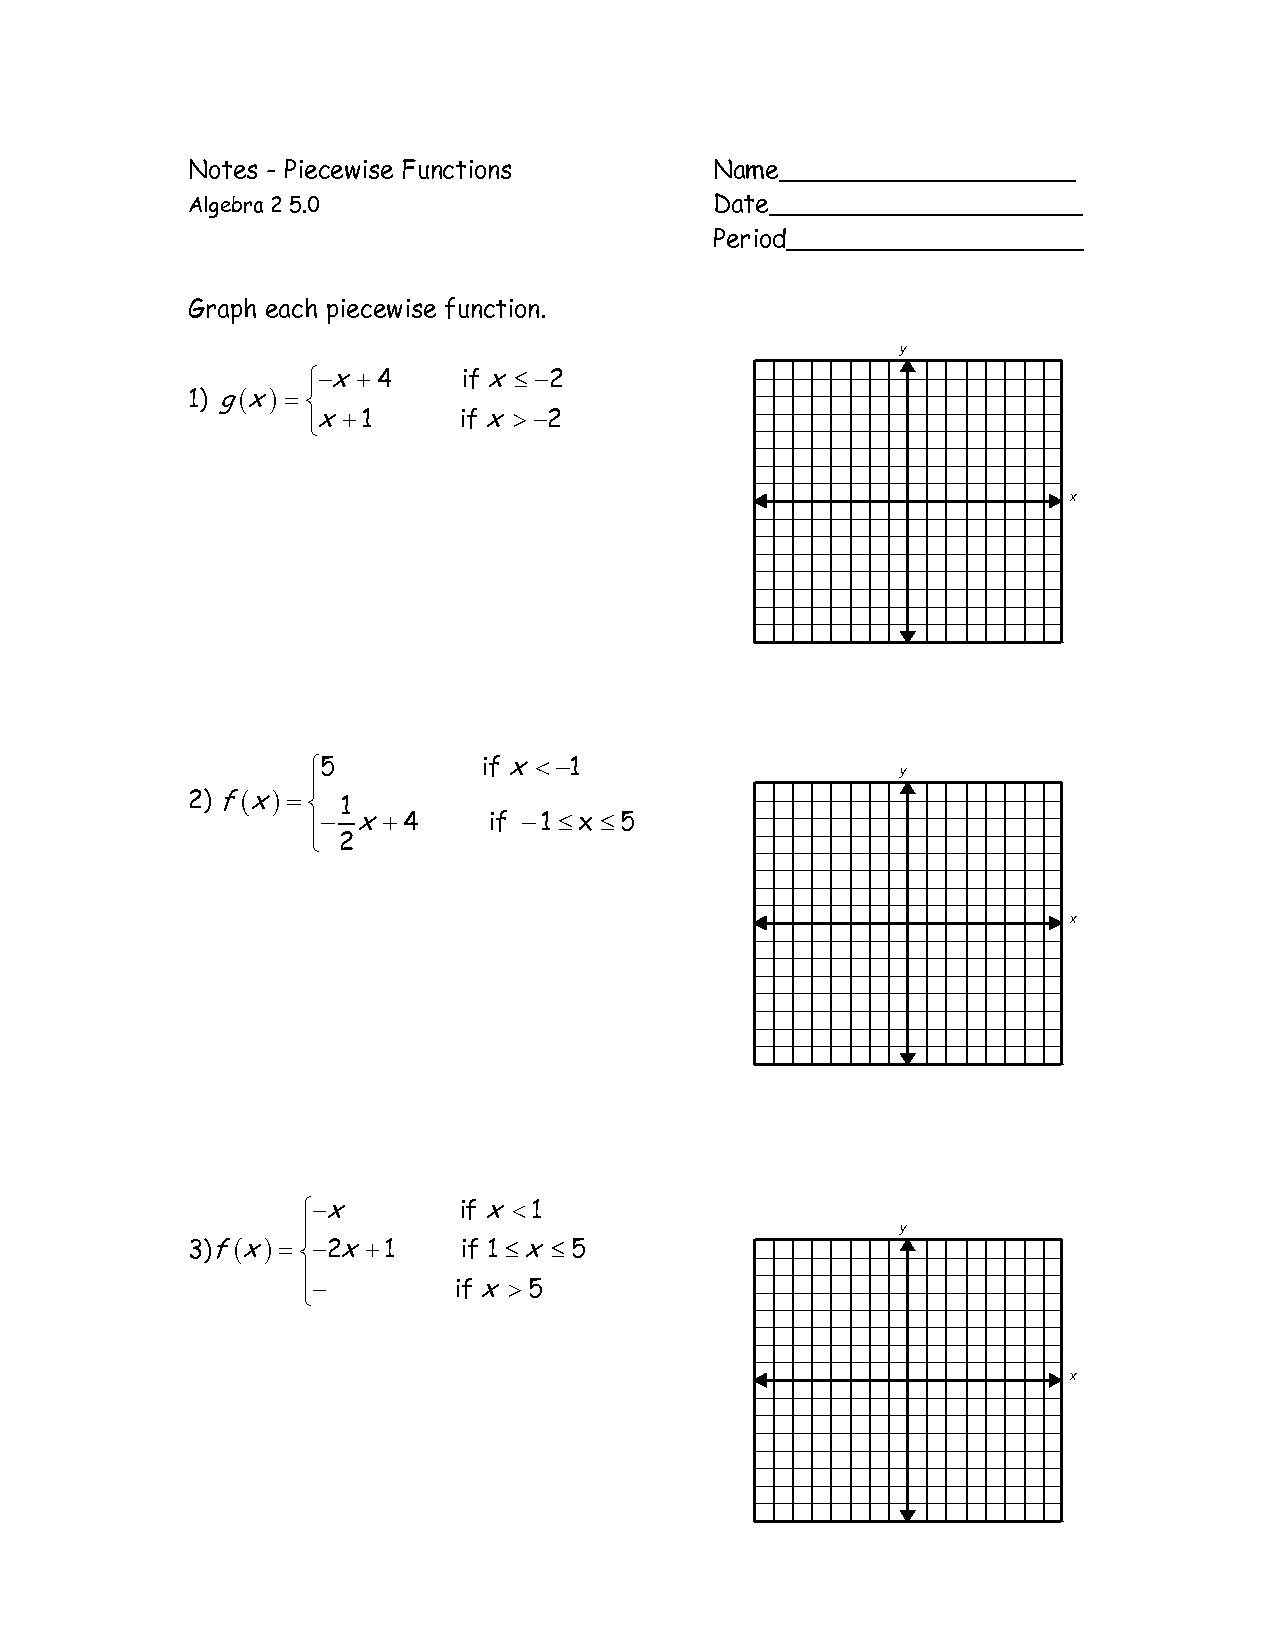 graphs of piecewise functions worksheet - Google Search | Math class ...